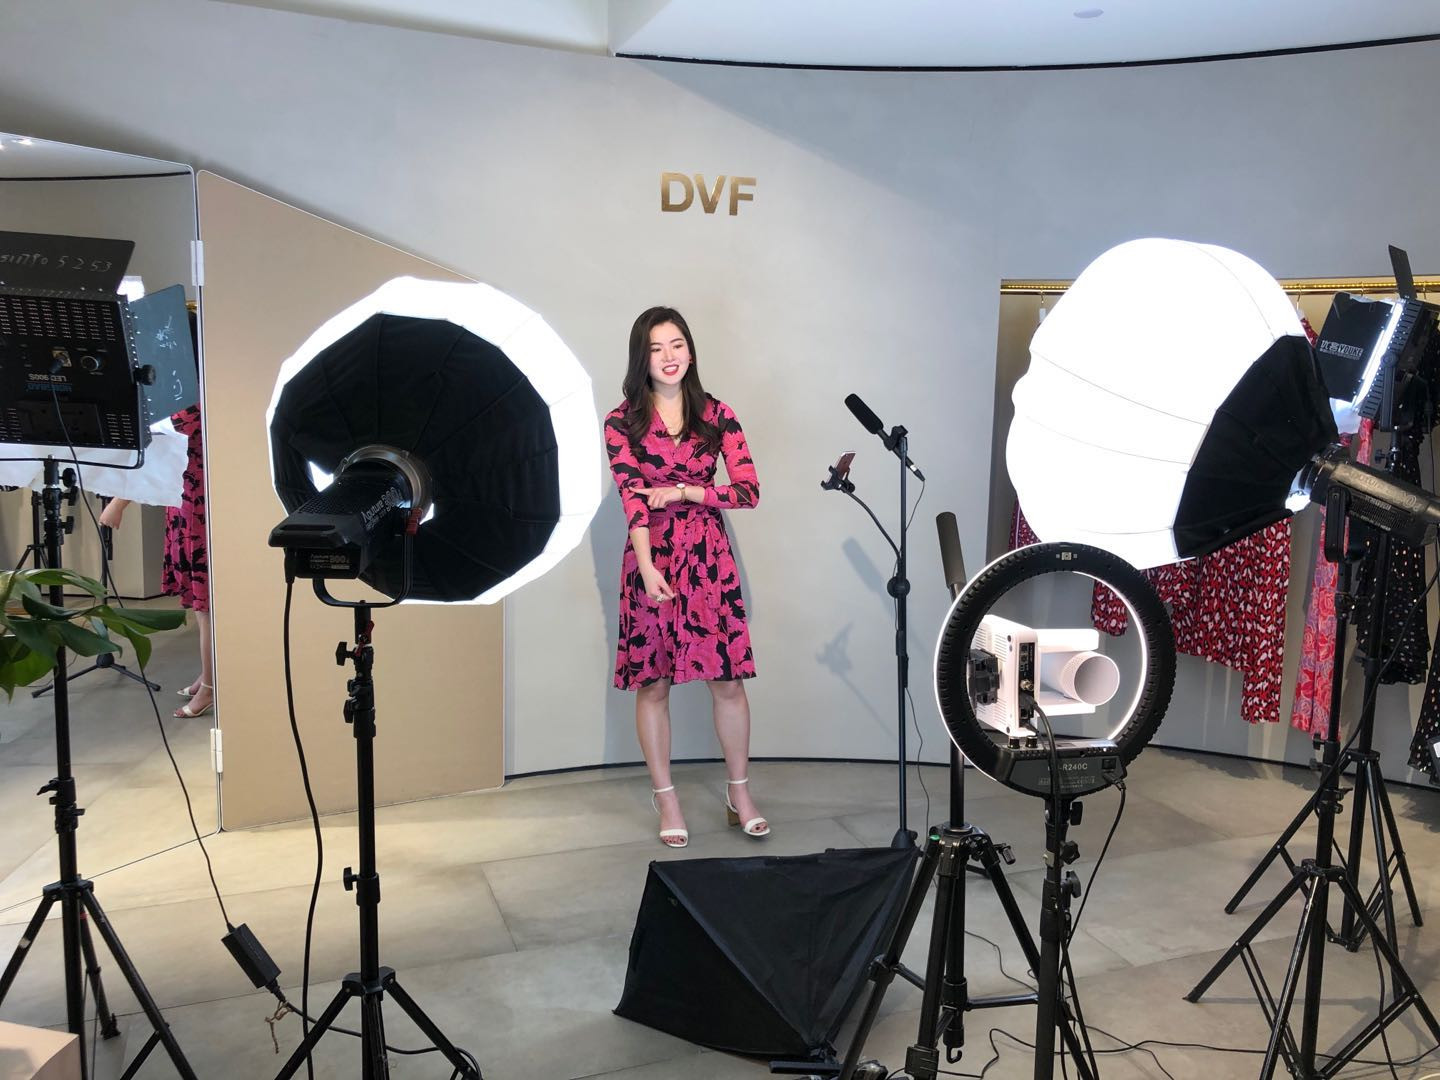 DVF-livestream-at-Shanghai-Fashion-Week_